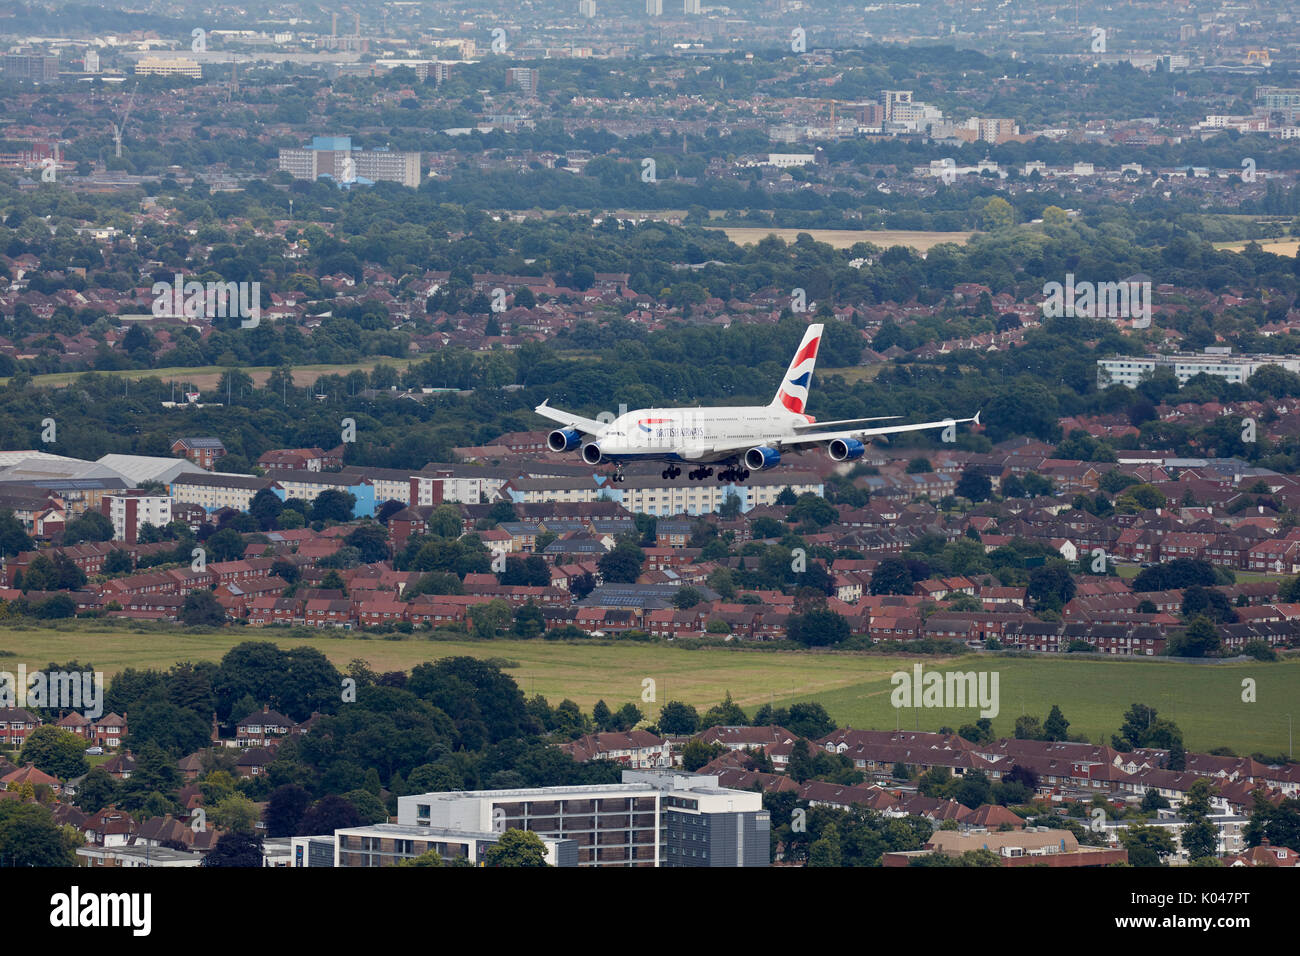 A British Airways Airbus A380 on approach to London Heathrow Airport - Stock Image